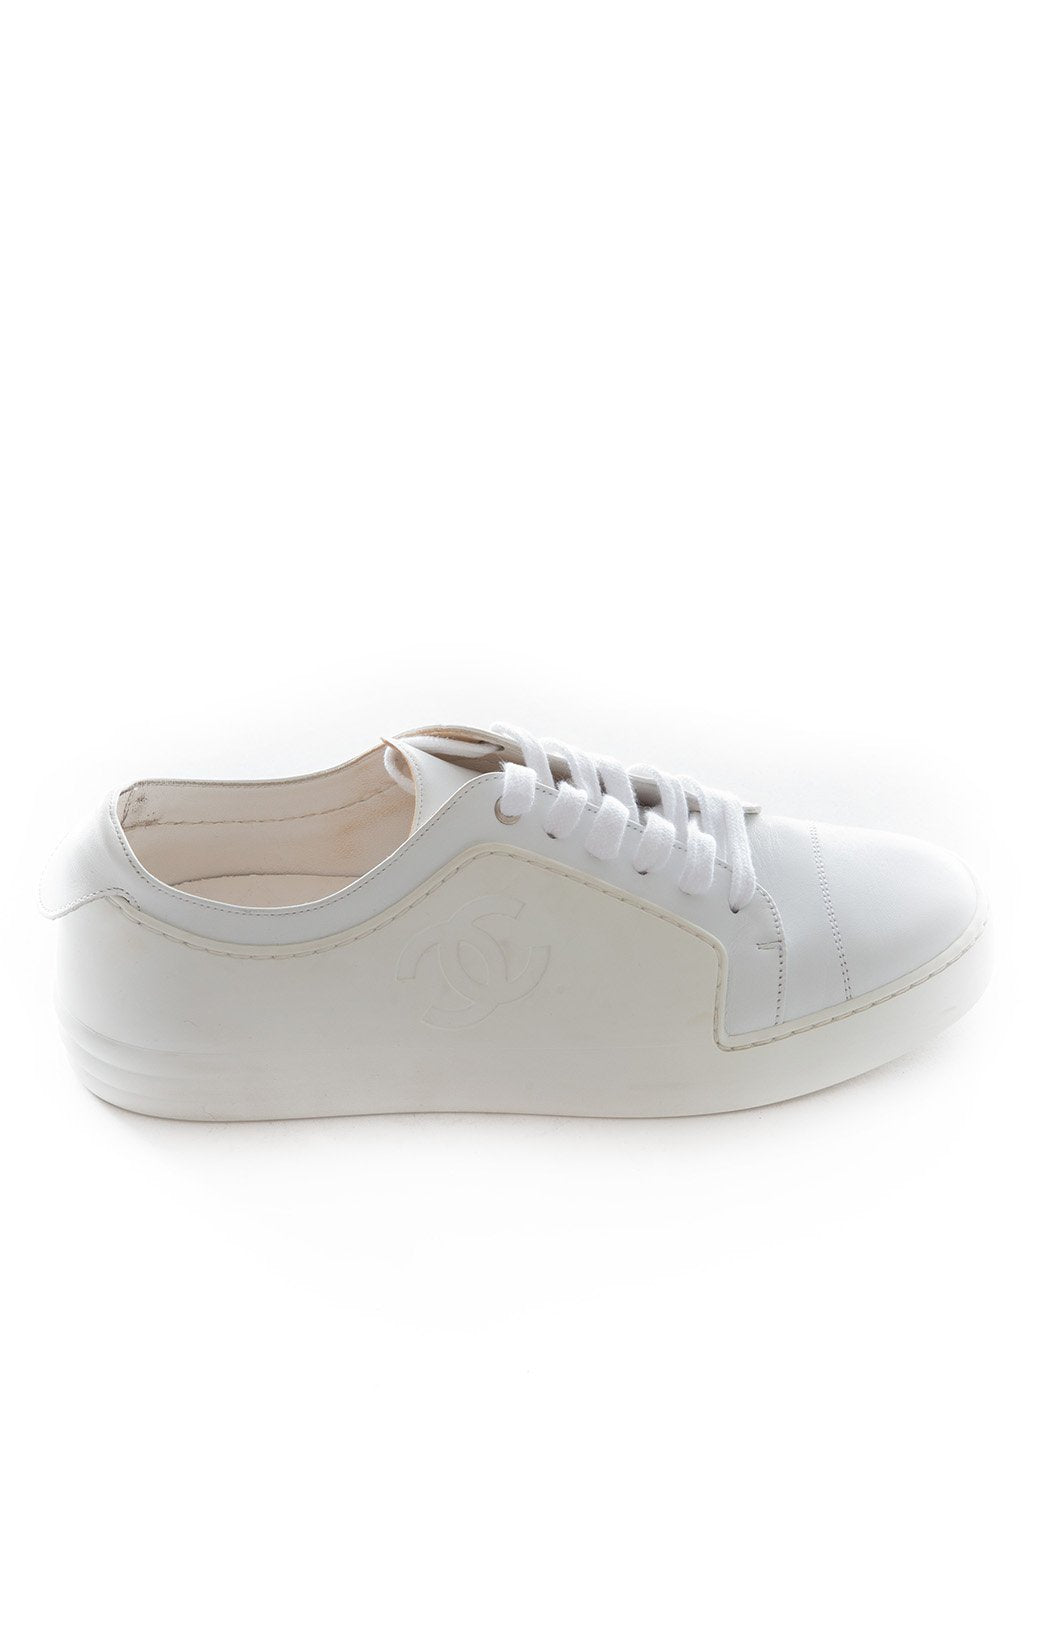 Side view of CHANEL Tennis Shoe